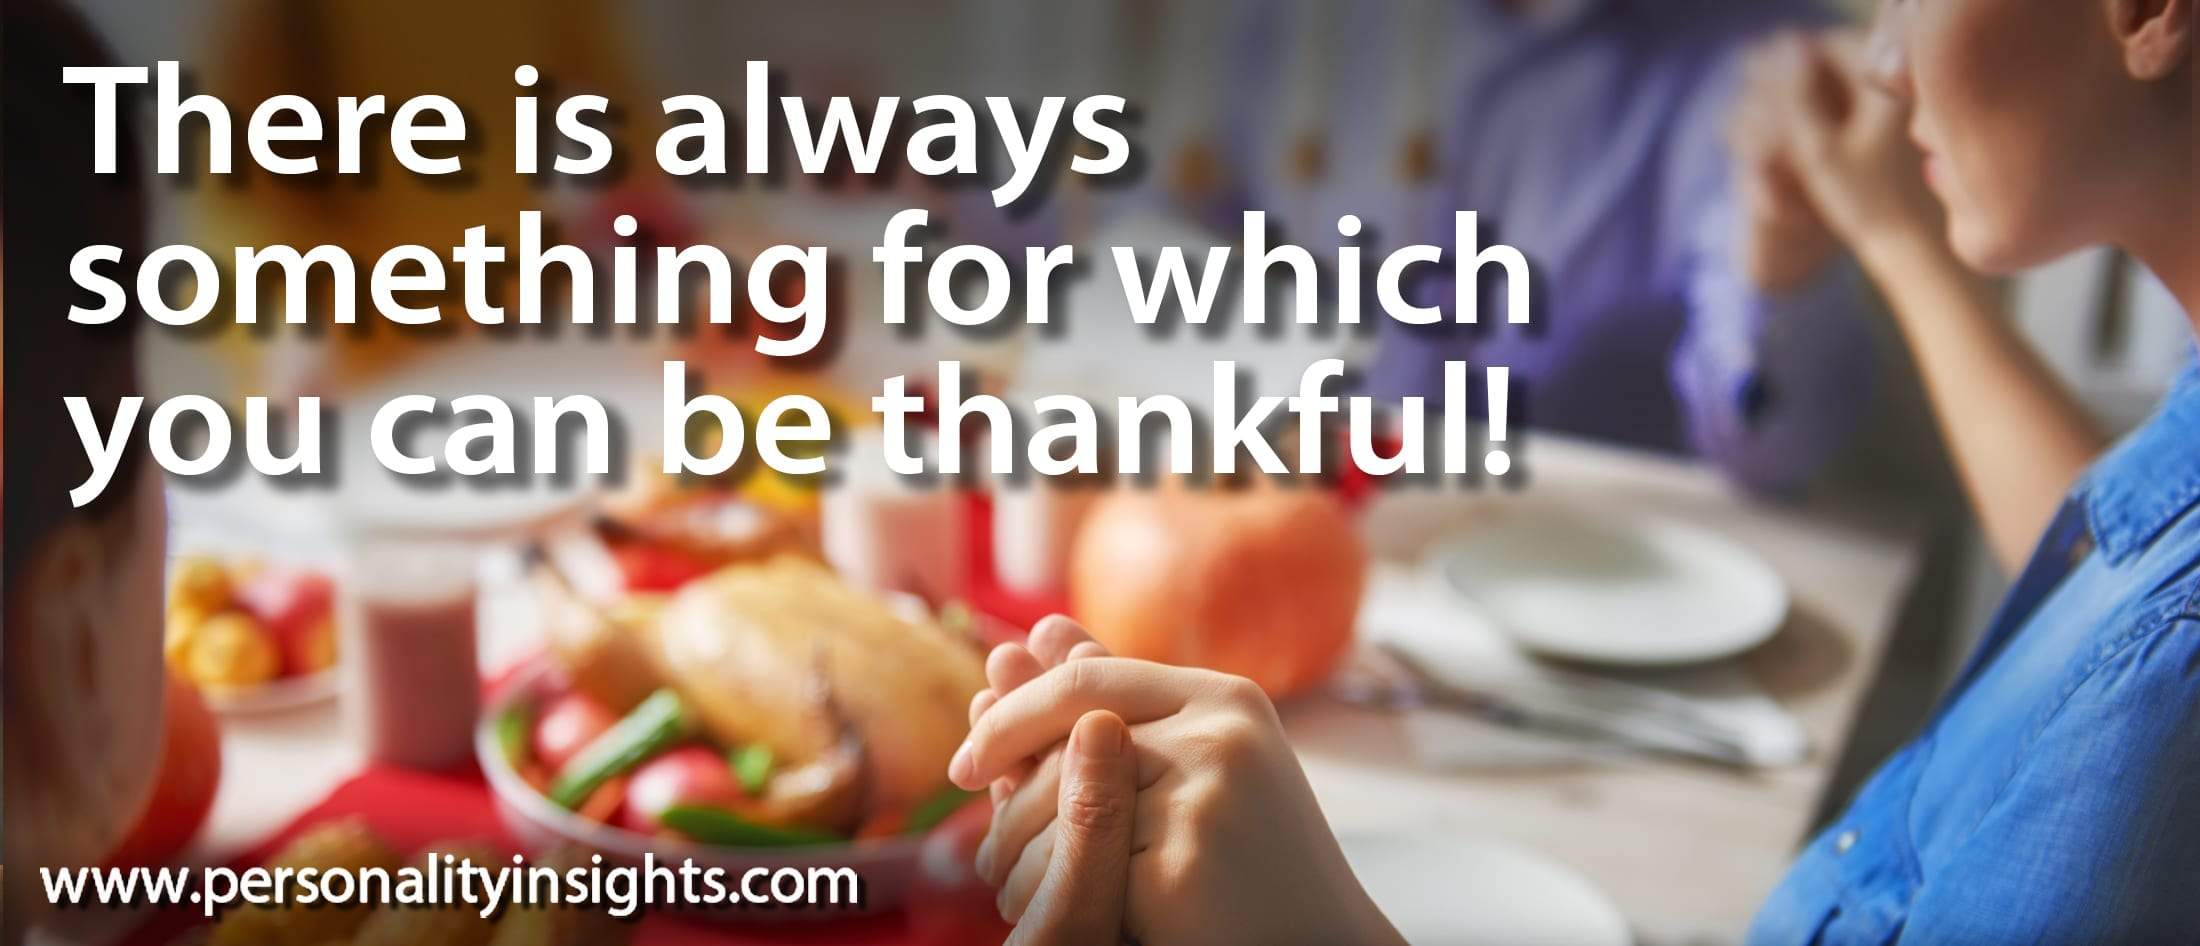 Tip: There is always something for which you can be thankful!